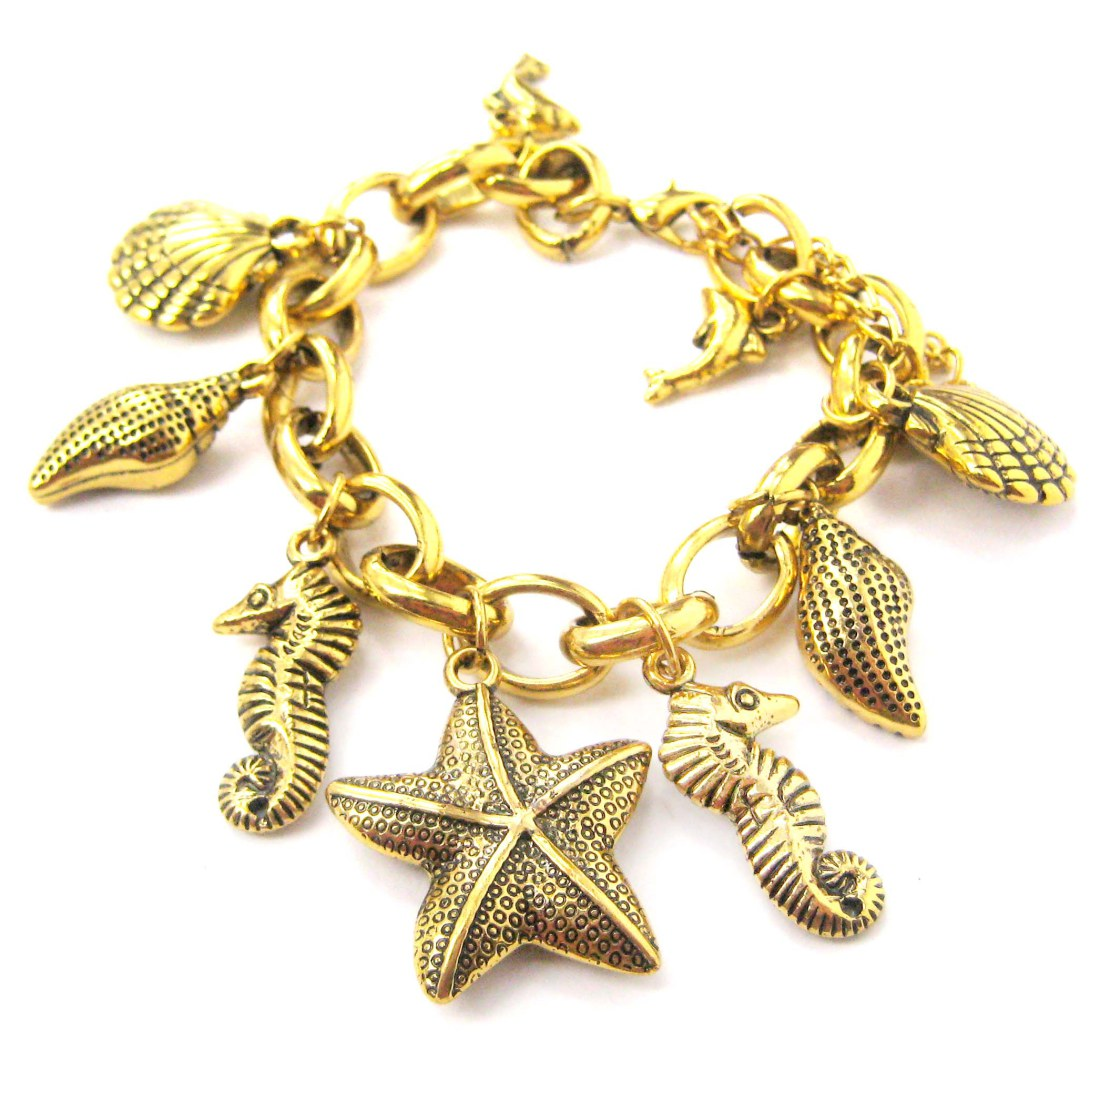 Seashell Charm Bracelet: Starfish Seahorse Dolphin Sea Creatures Charm Bracelet In